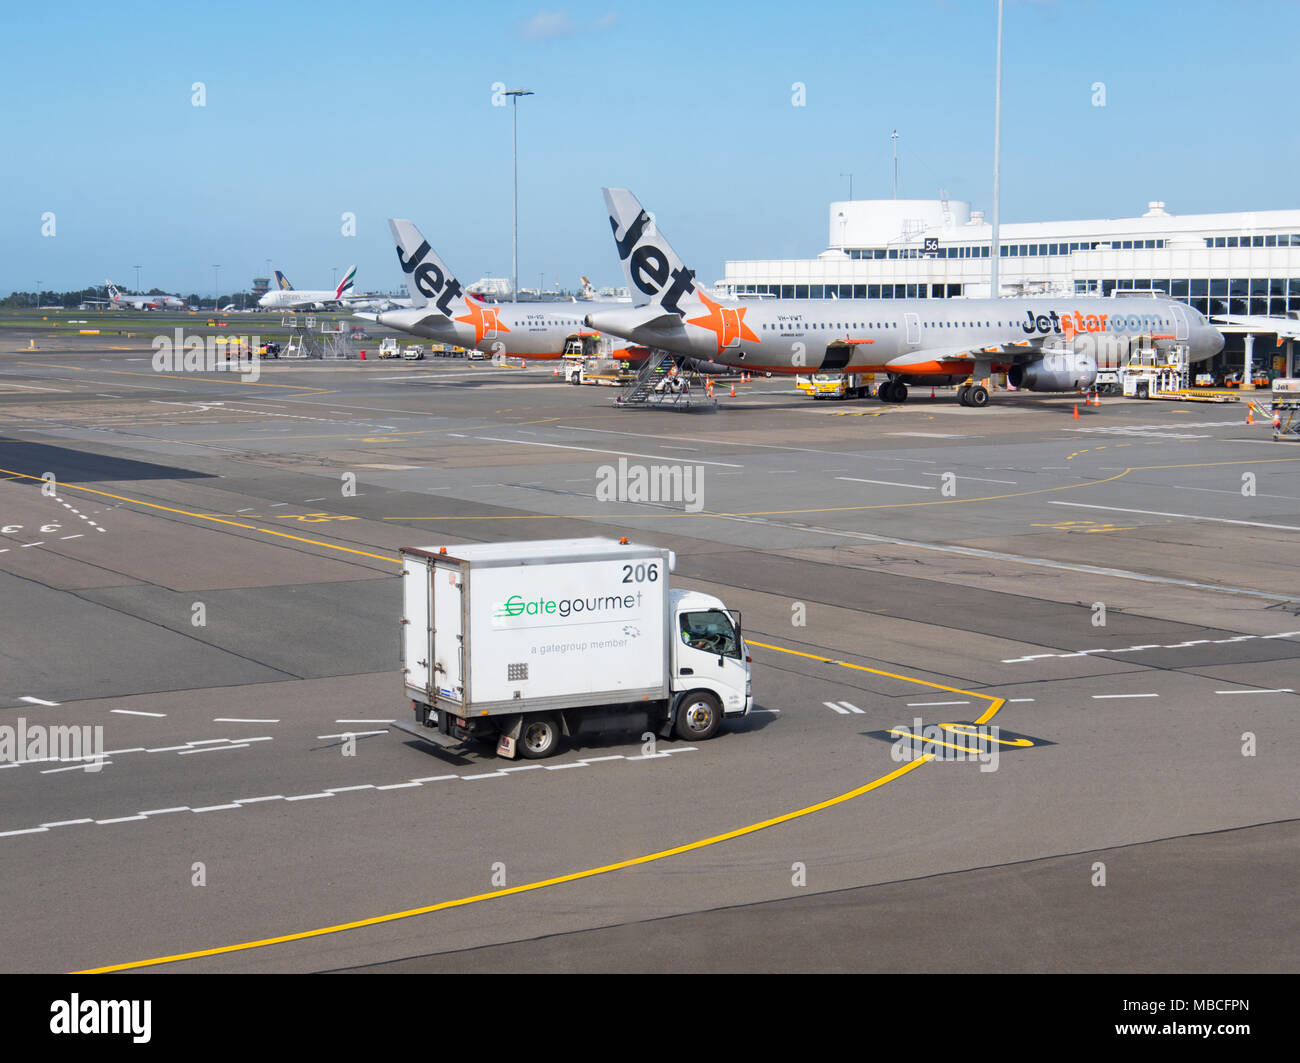 Gate Gourmet Catering Truck on the tarmac near Jetstar aircrafts at Sydney Airport, domestic terminal, Australia - Stock Image